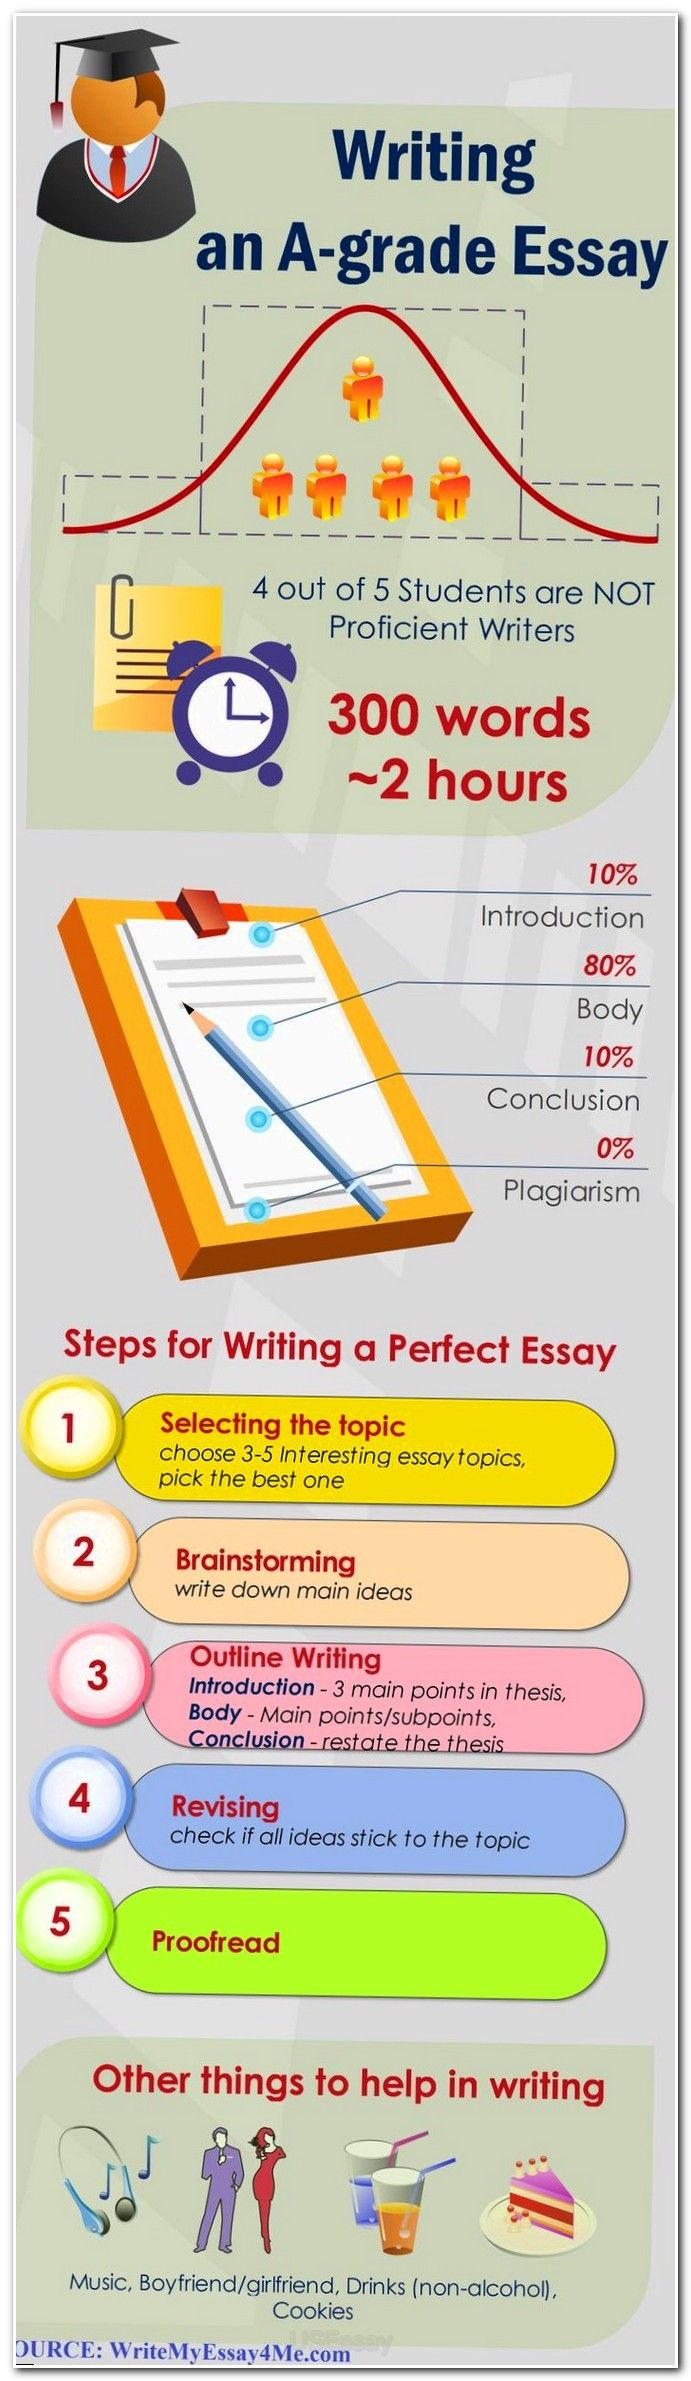 the best good essay example ideas examples of essay essaywriting apa writing format sample persuasive outline template english creative writing examples points for essay writing good essay topics